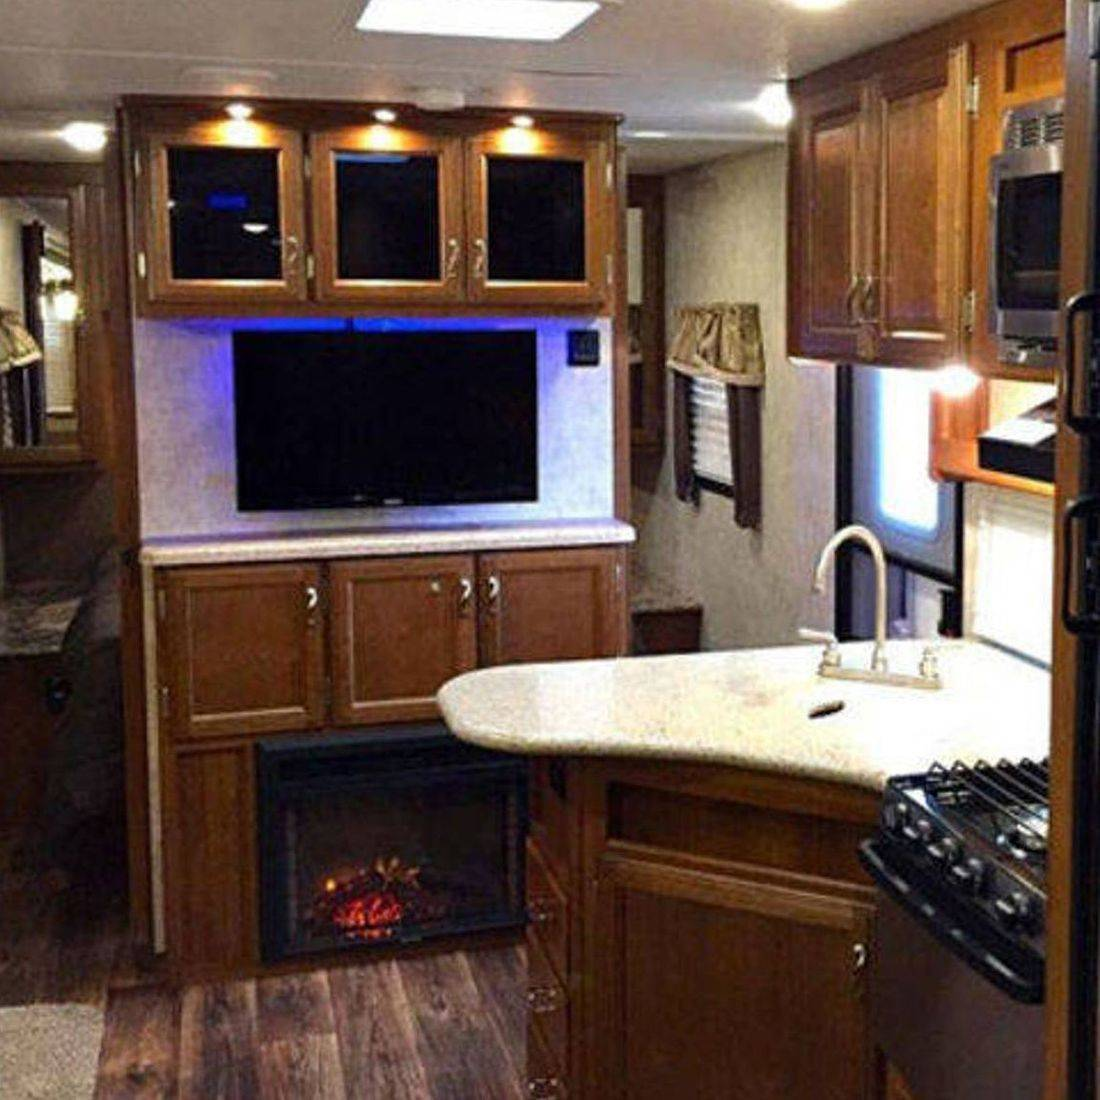 Enjoy camoing in one of our RV Rentals this season.